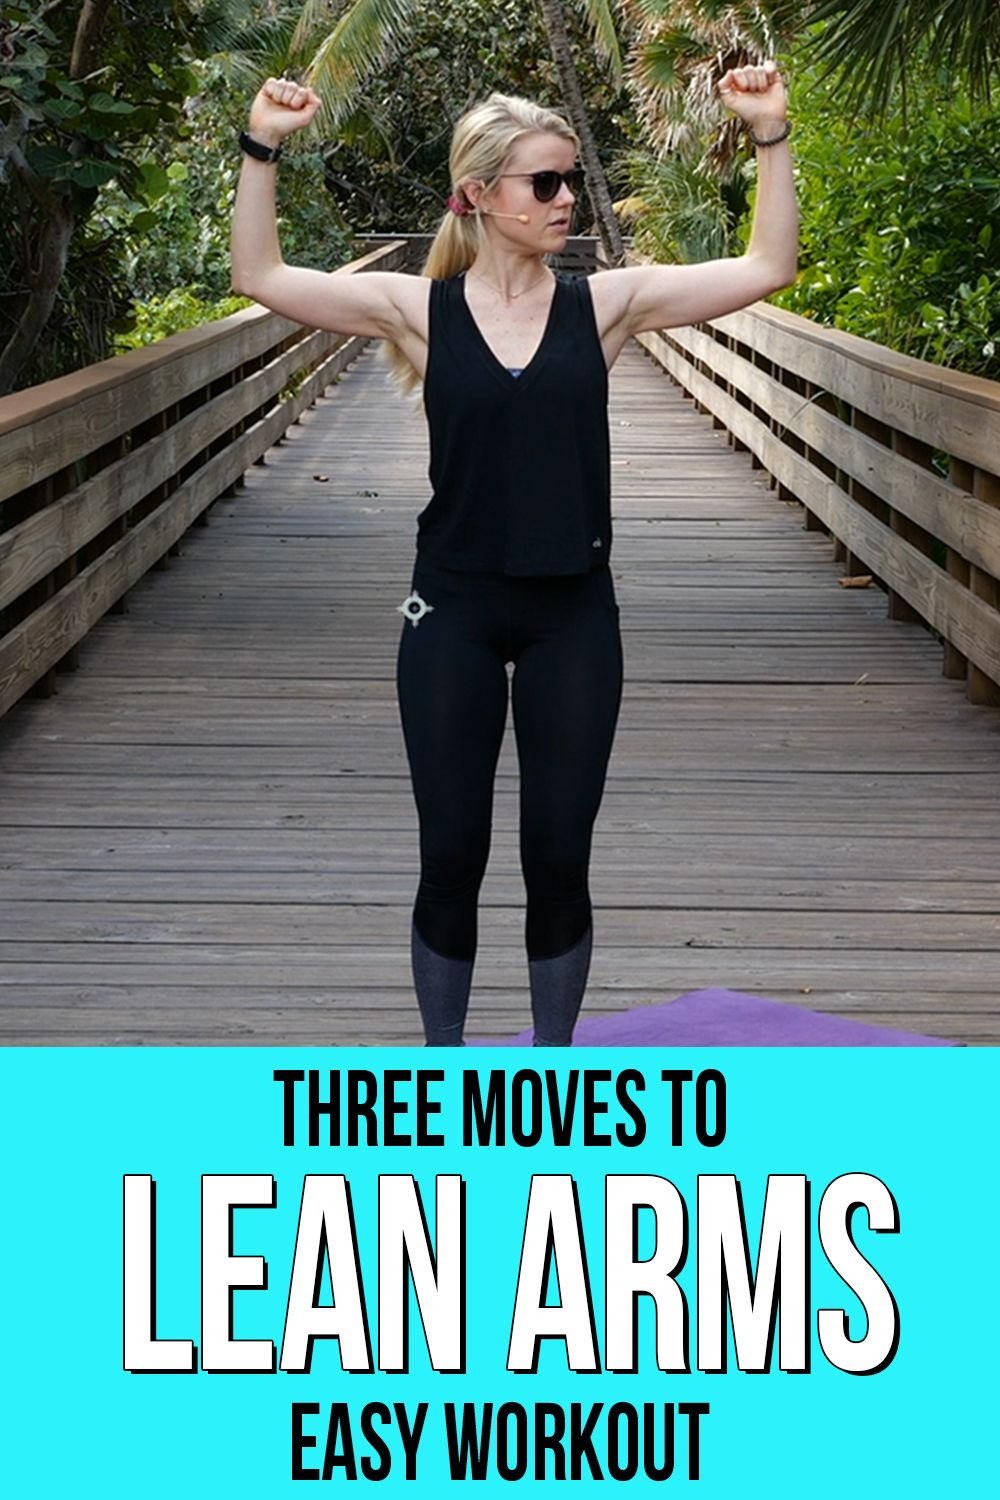 Easy Lean Arms Home Workout Svelte Training Lean Arms Svelte Training Workout Without Gym